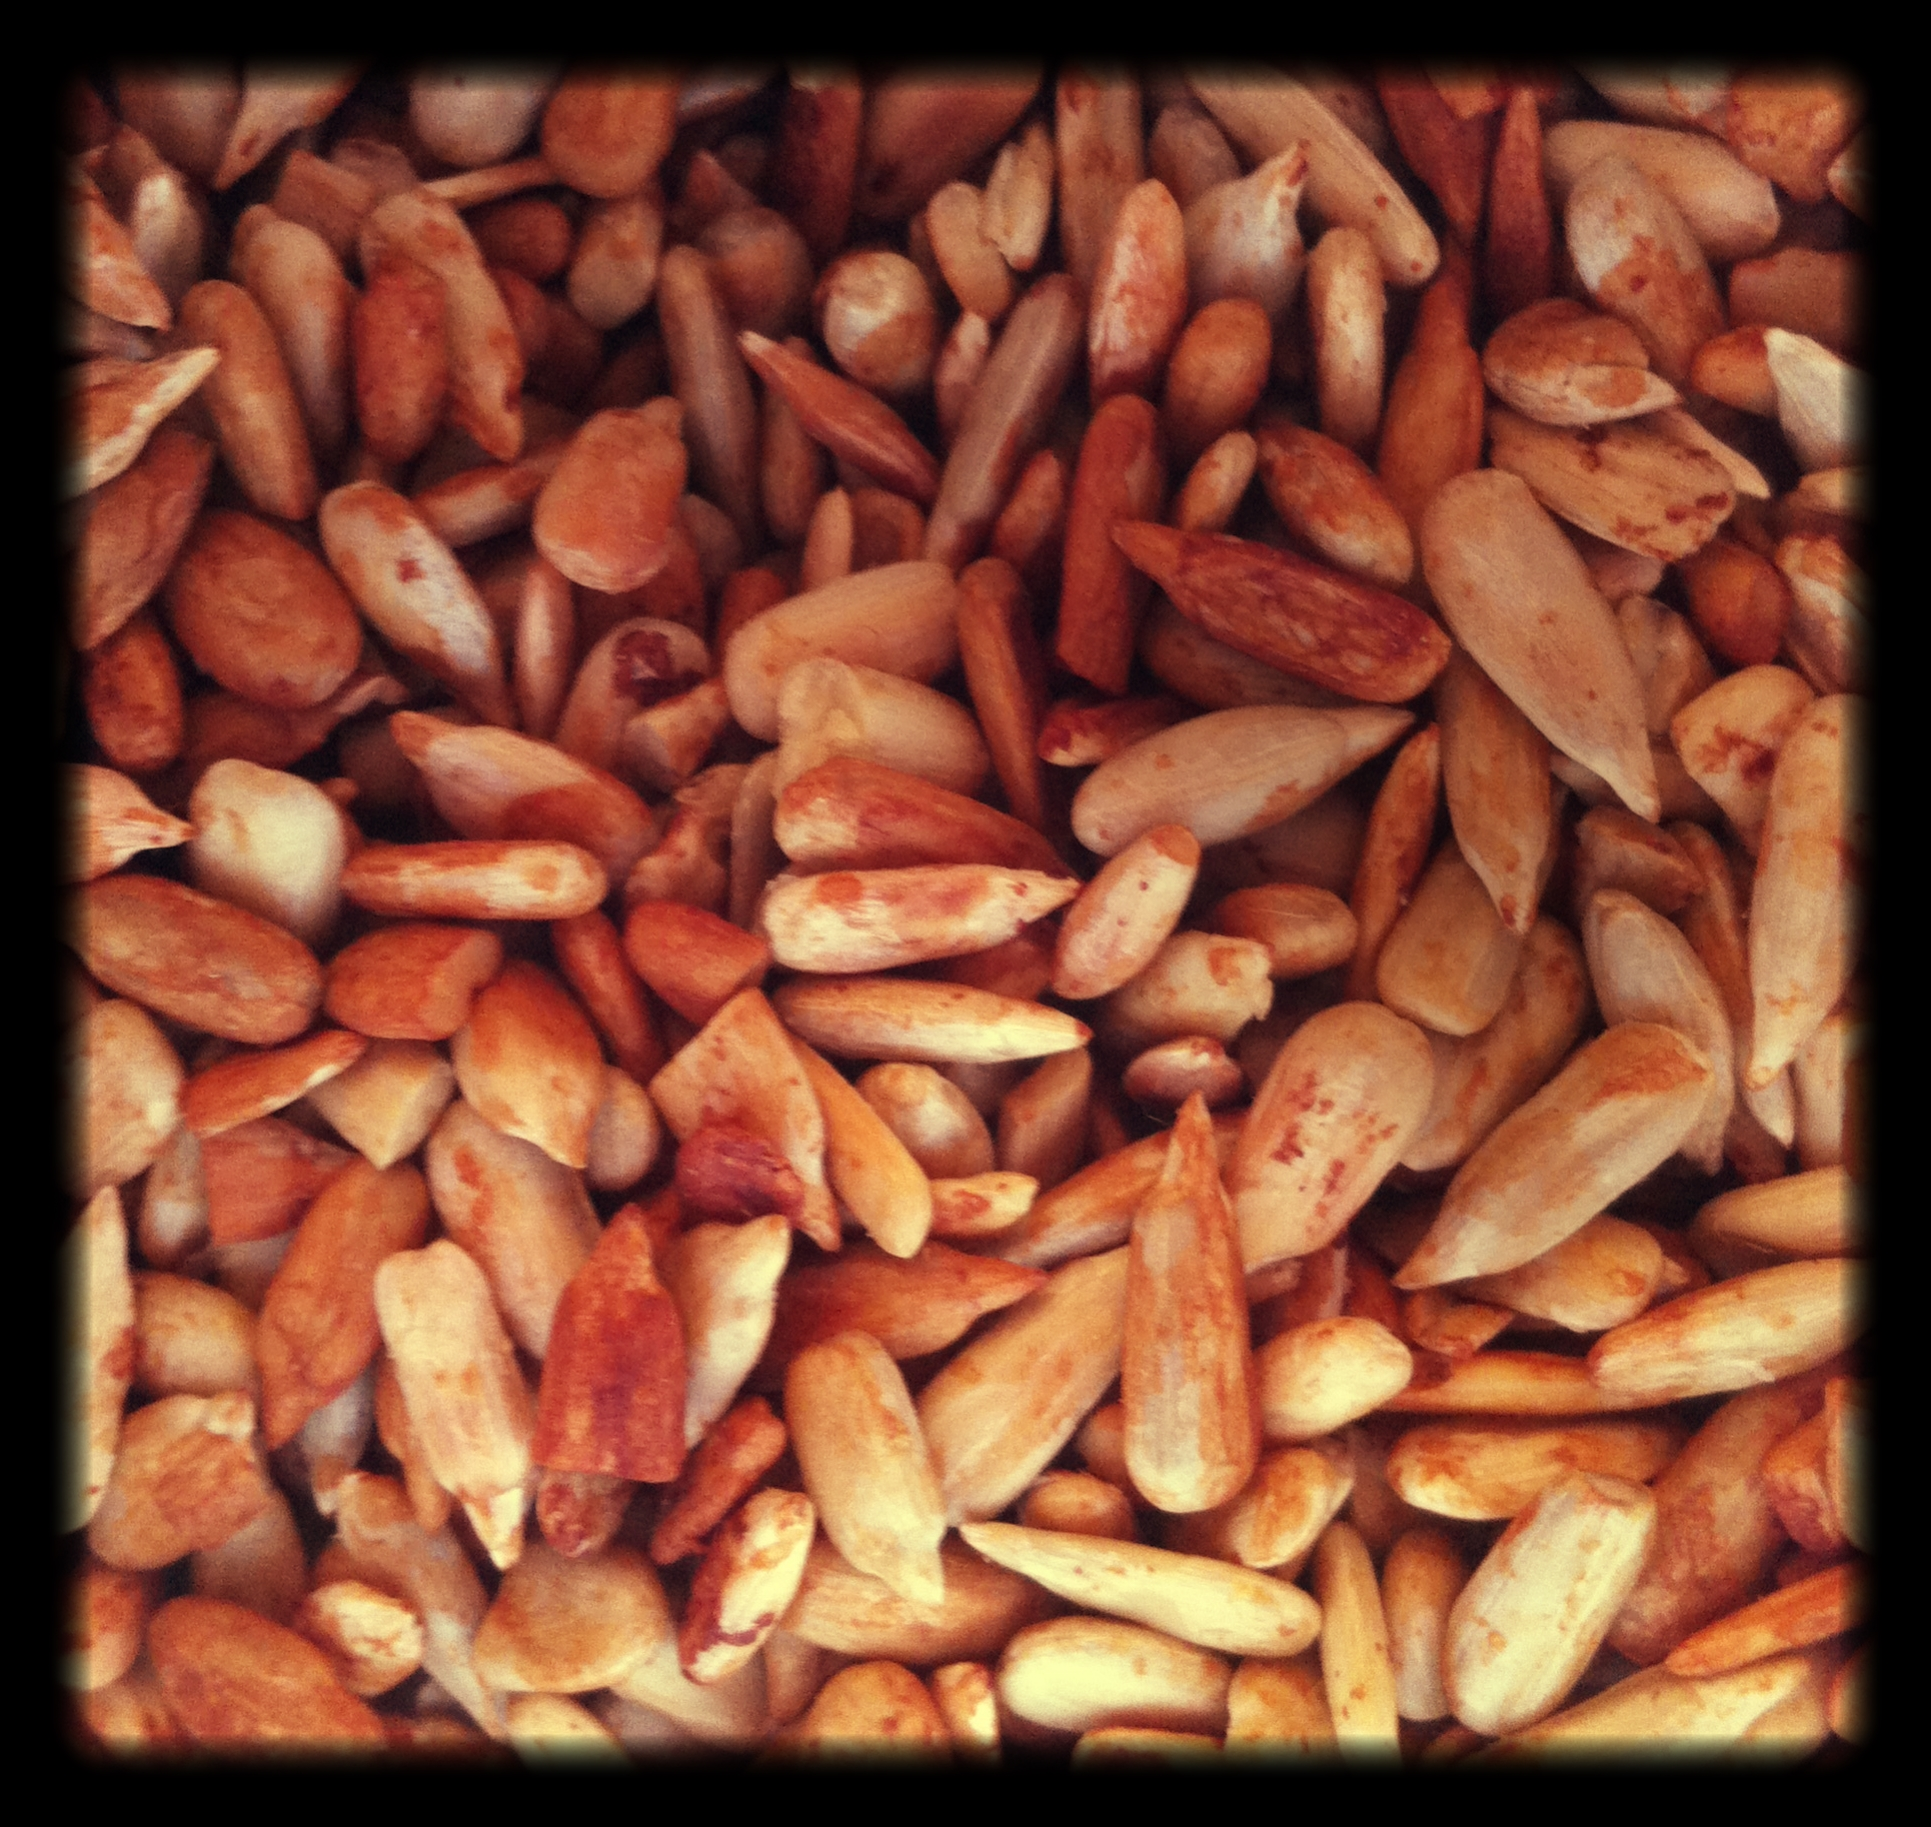 Golden_Roasted_Sunflower_Seeds